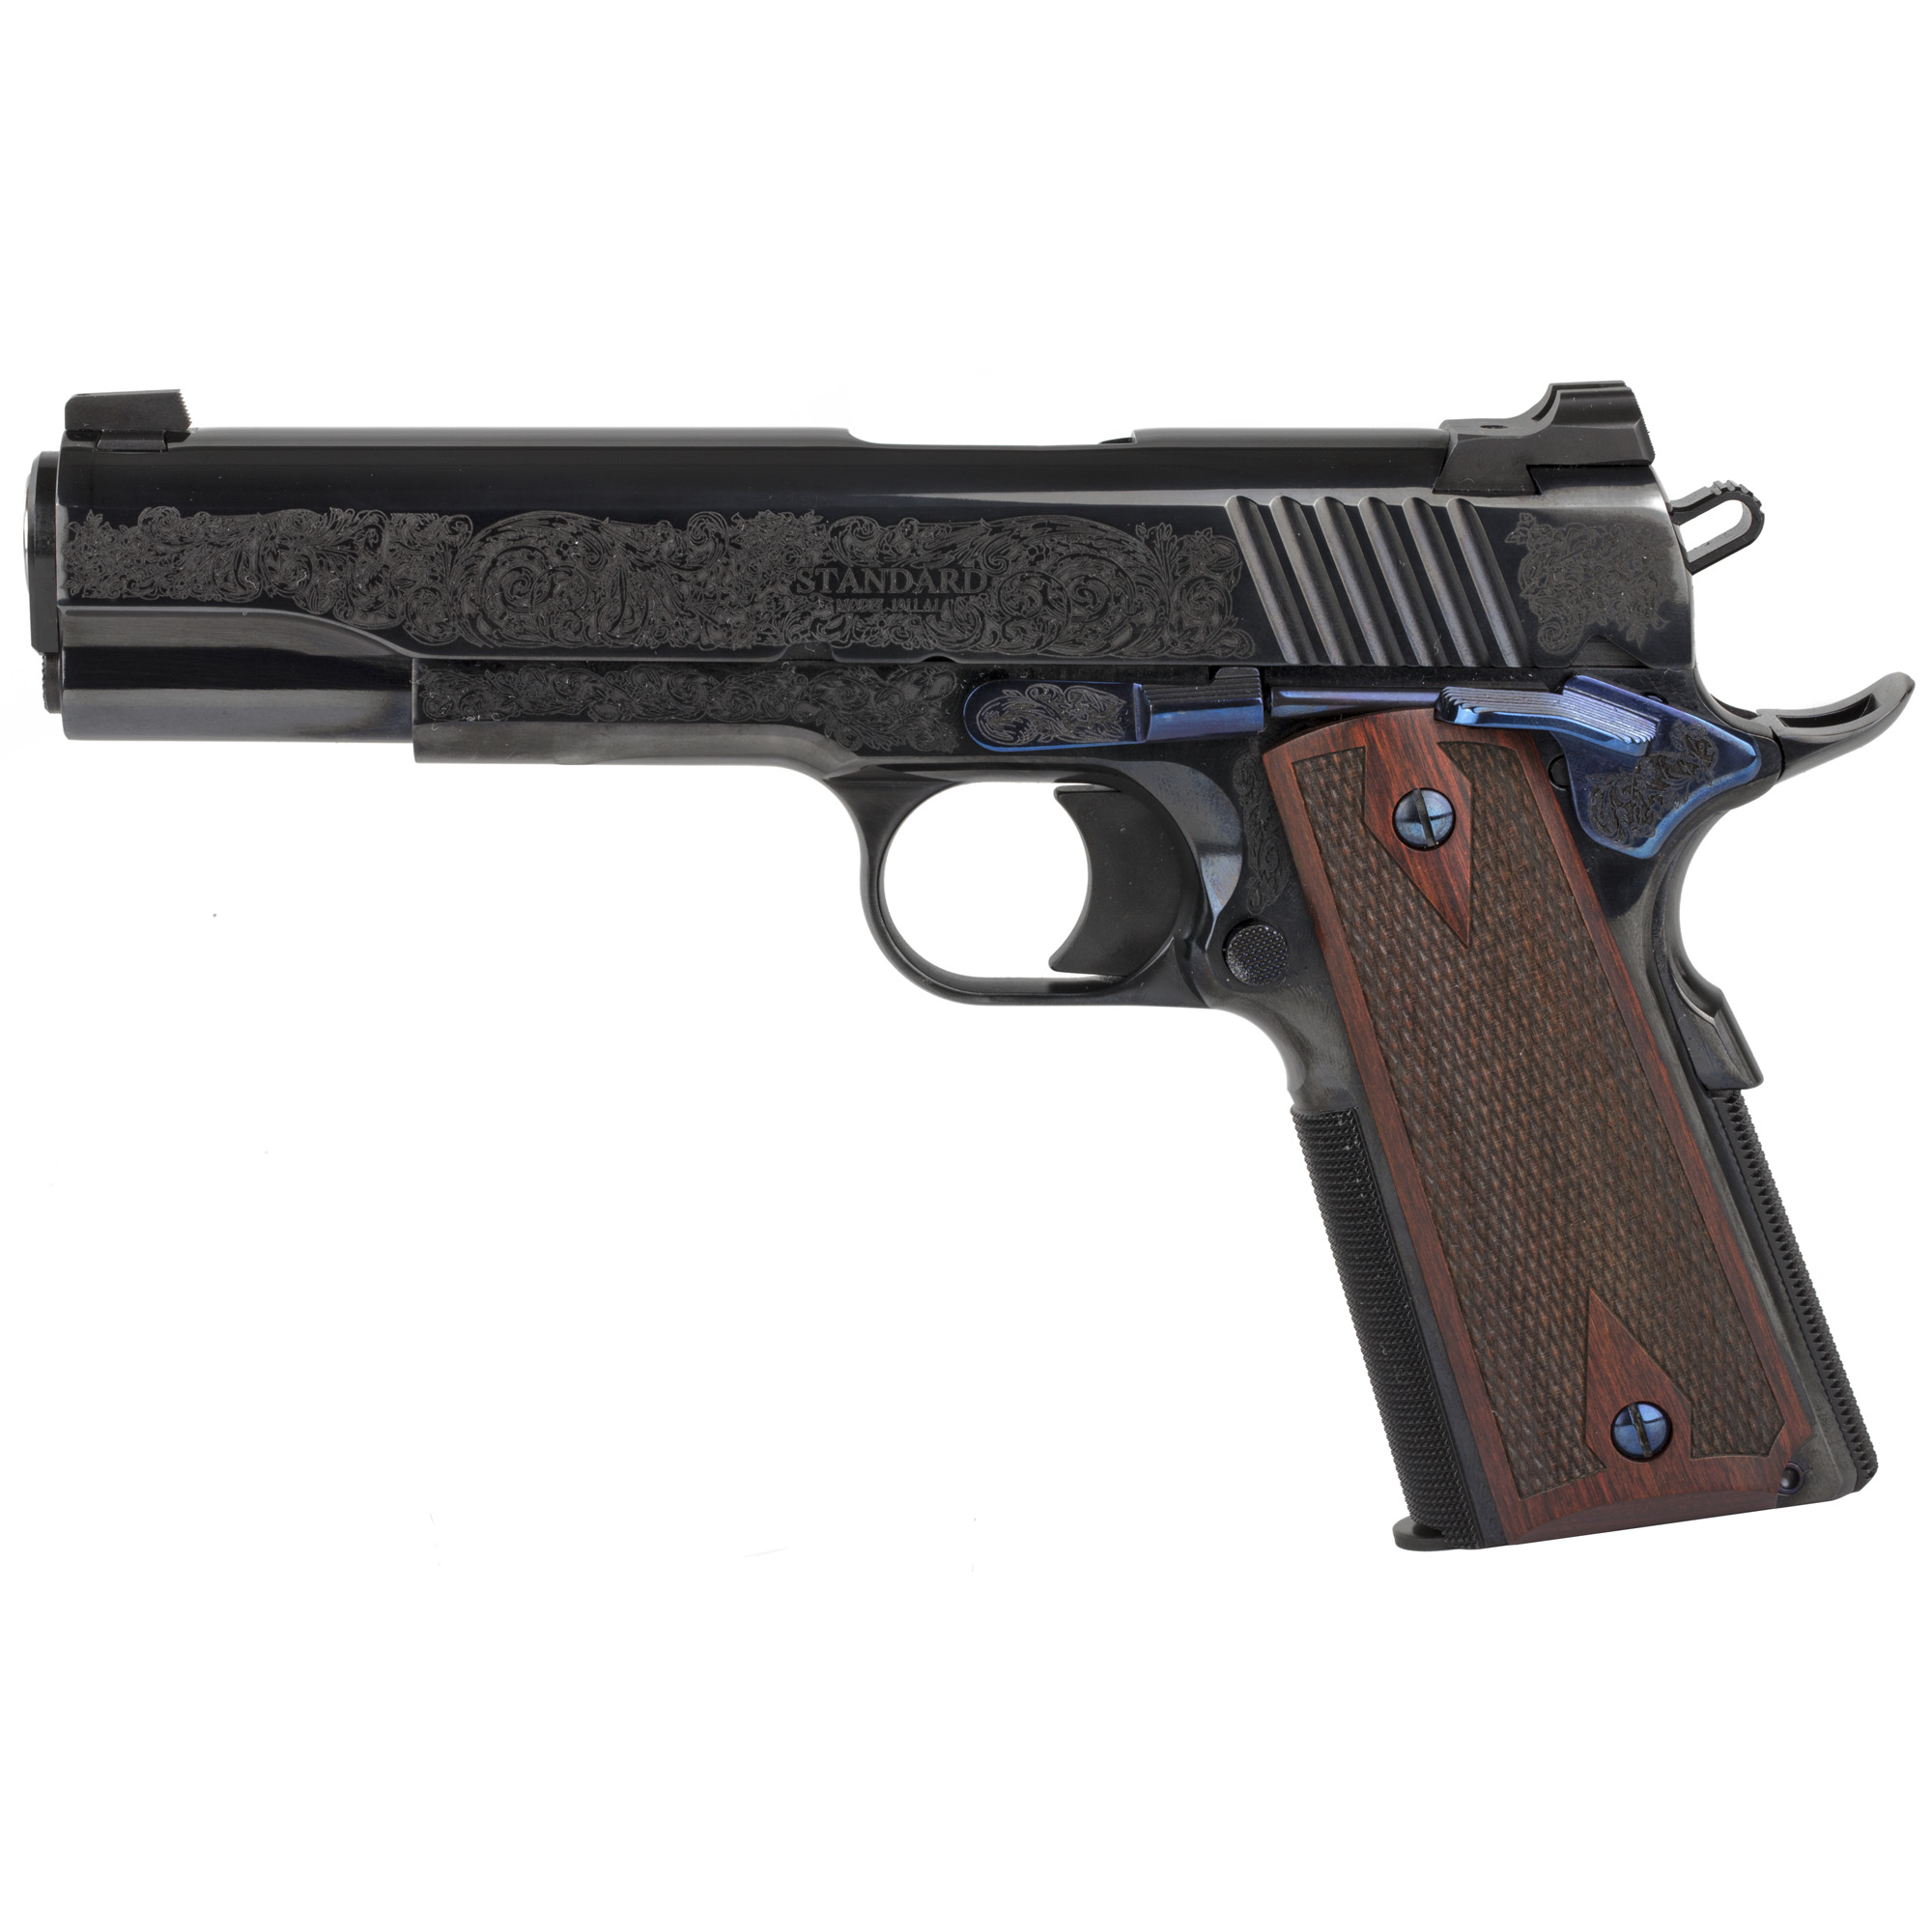 """The Standard Manufacturing 1911 is the pinnacle of the gun making art. This model with its deep Royal Blue Engraved finish is like no other 1911 available anywhere and at any price. To obtain this finish all metal surfaces must be meticulously prepared by our expert craftsman with many labor intensive hours of hand polishing and stoning. No other manufacturer that we know of is capable of producing this level of finish. In fact"""" this Royal Blue finish is only encountered on the very best guns manufactured many decades ago when time and labor was not a major factor but craftsmanship was. At all stages of manufacturing this gun we employ the same fundamental principles. All of the metal to metal fits are as perfect as can be performed by the most skilled gunsmith."""